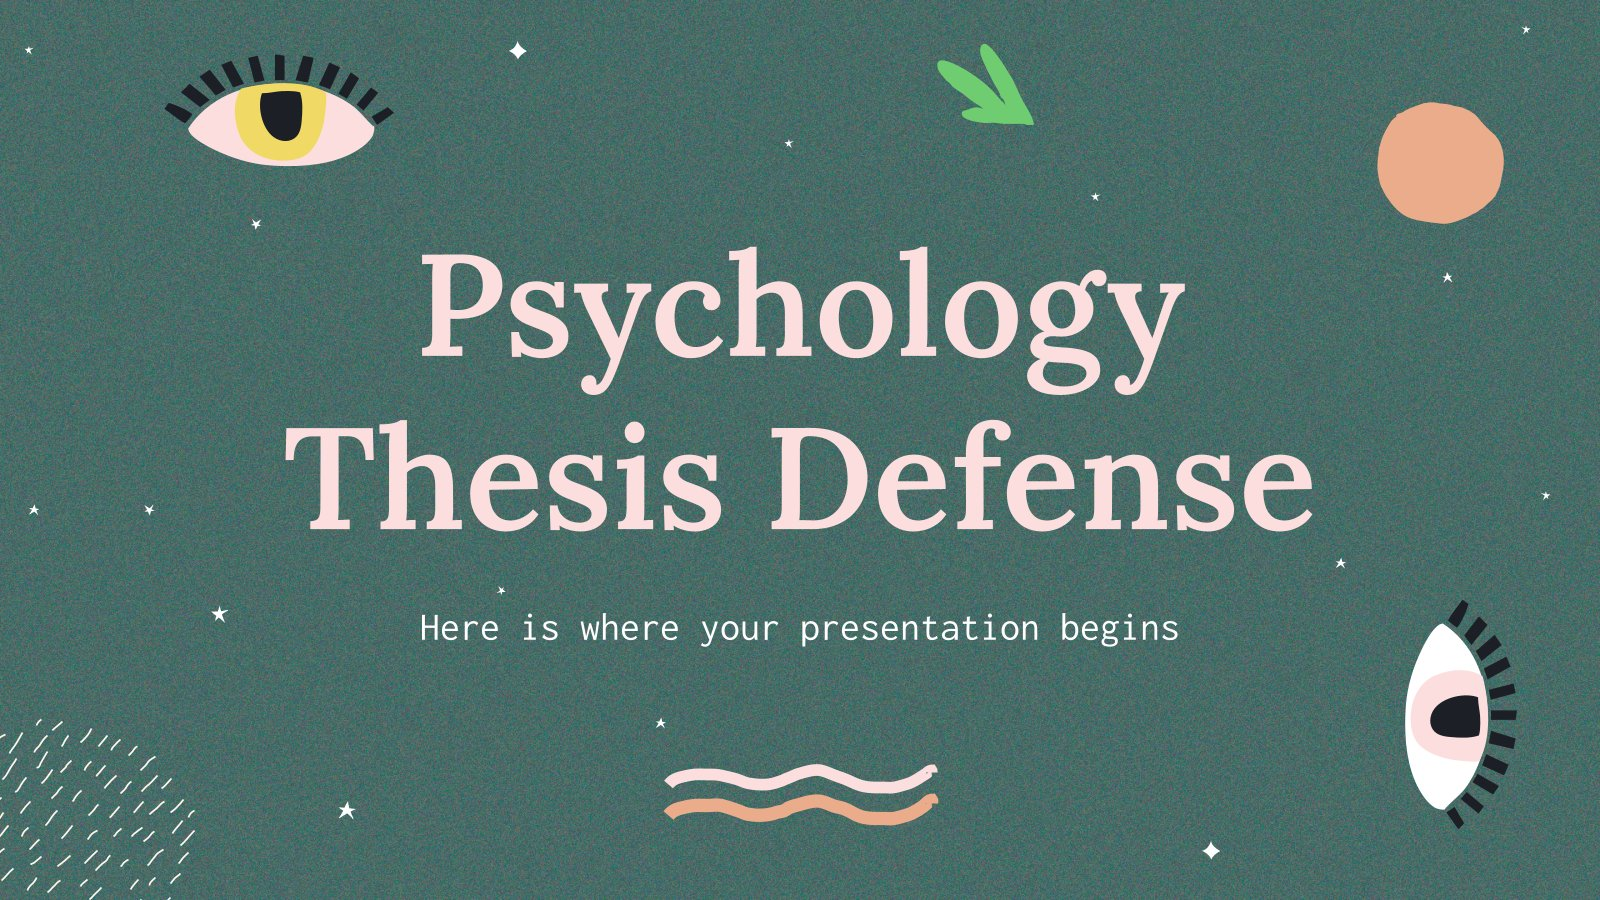 Psychology Thesis Defense presentation template